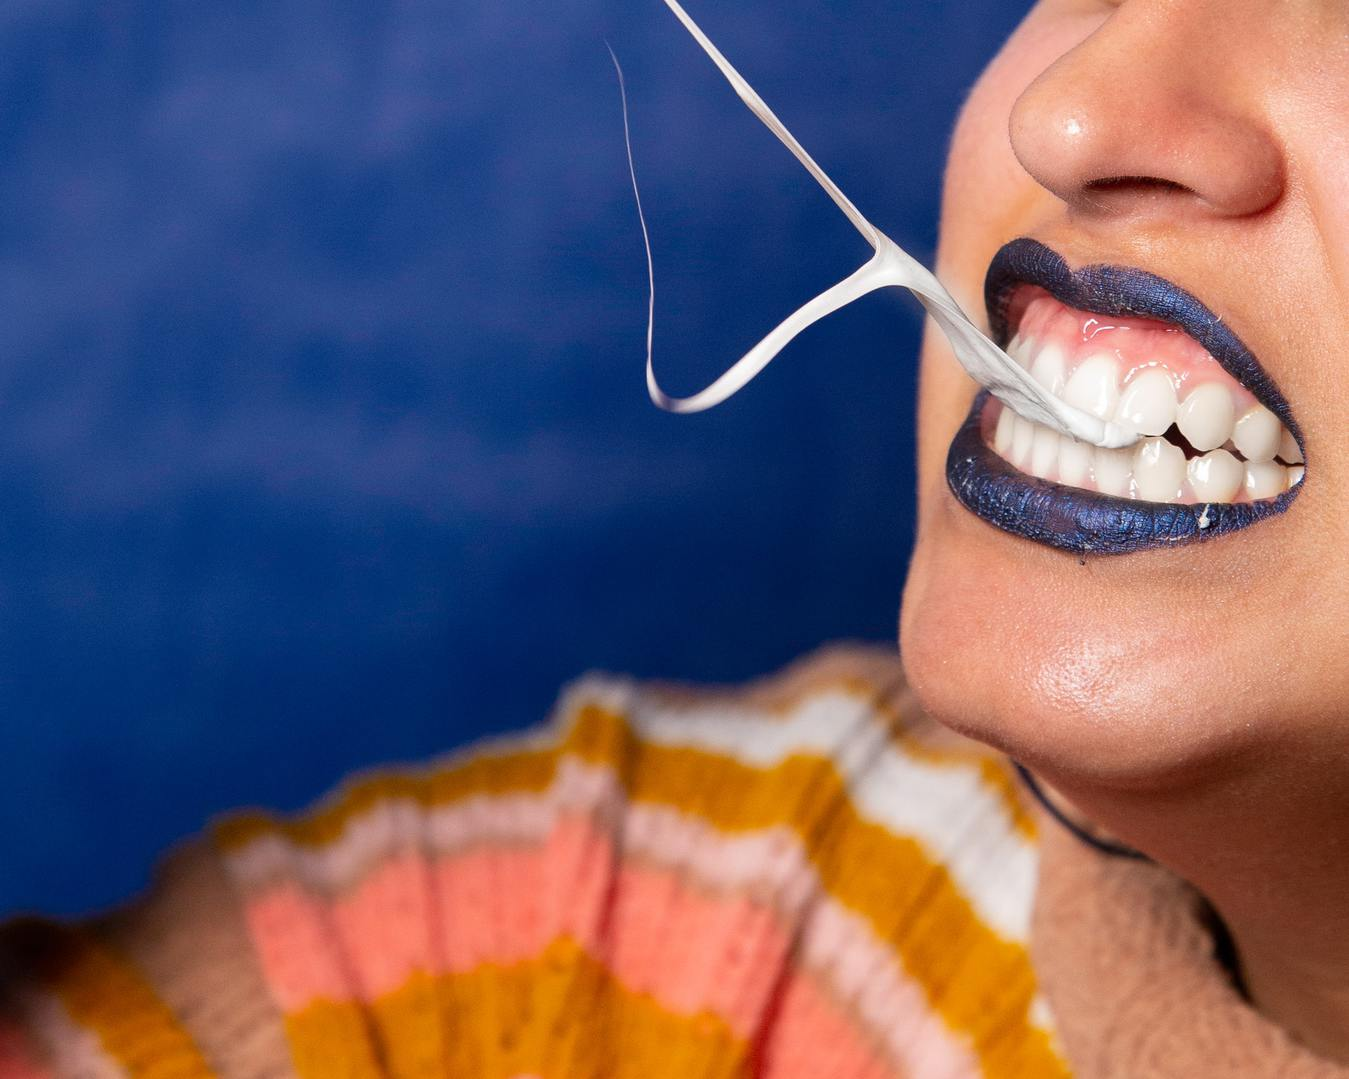 Woman with Bubble Gum in Teeth, Blue Lipstick